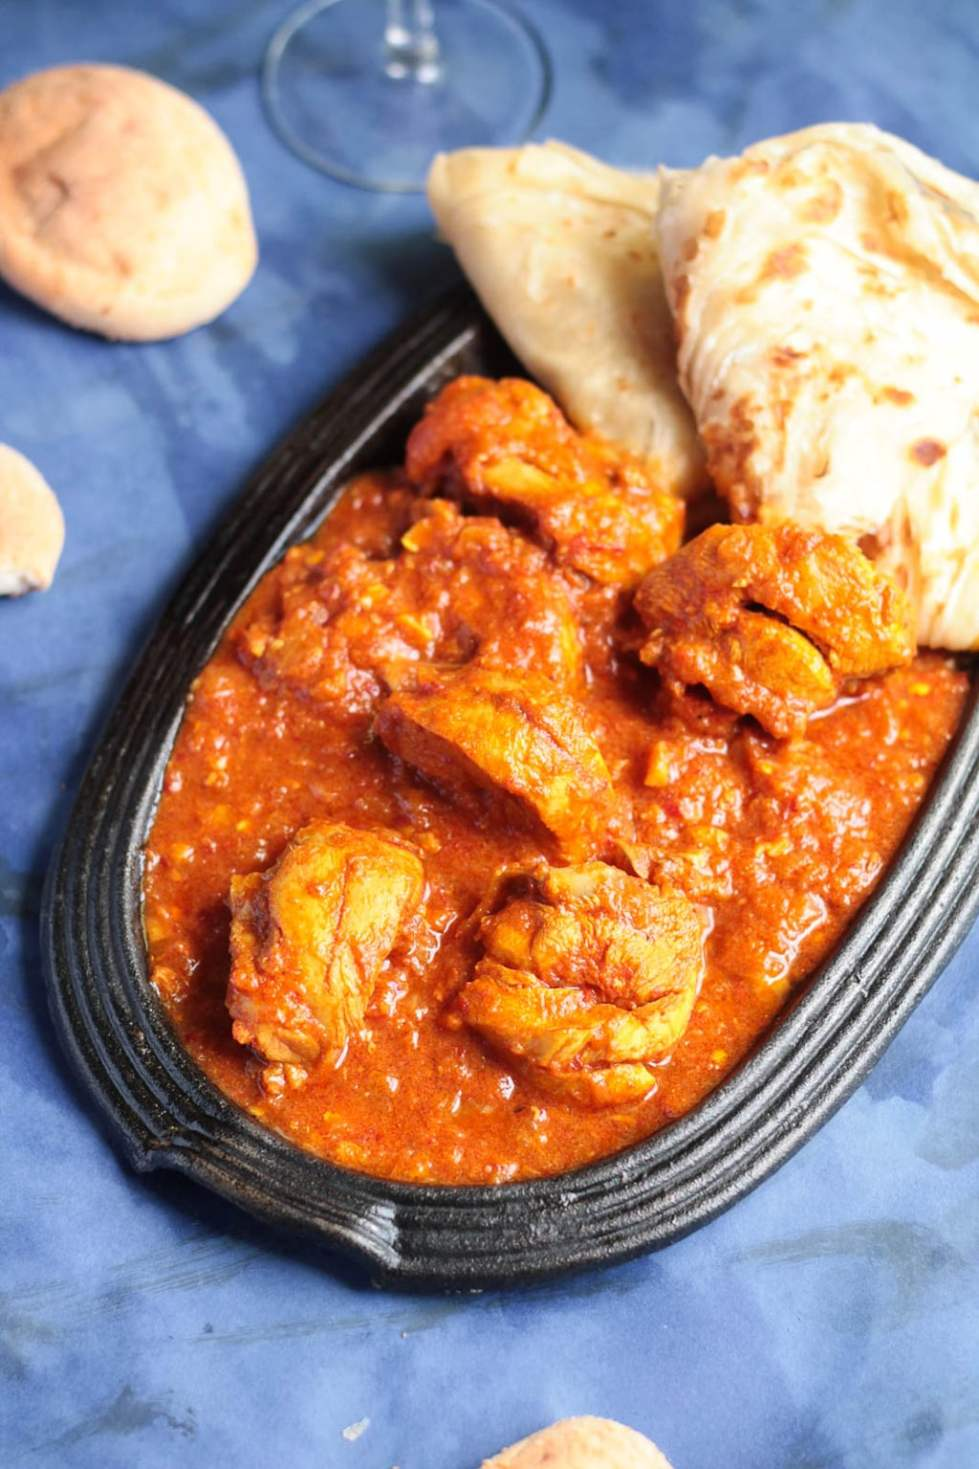 Chicken vindaloo recipe sujis cooking christmas is around the corner and i am fully in the holiday spiritaadi is enjoying with his friende entire home filled with happinessso friends we forumfinder Image collections